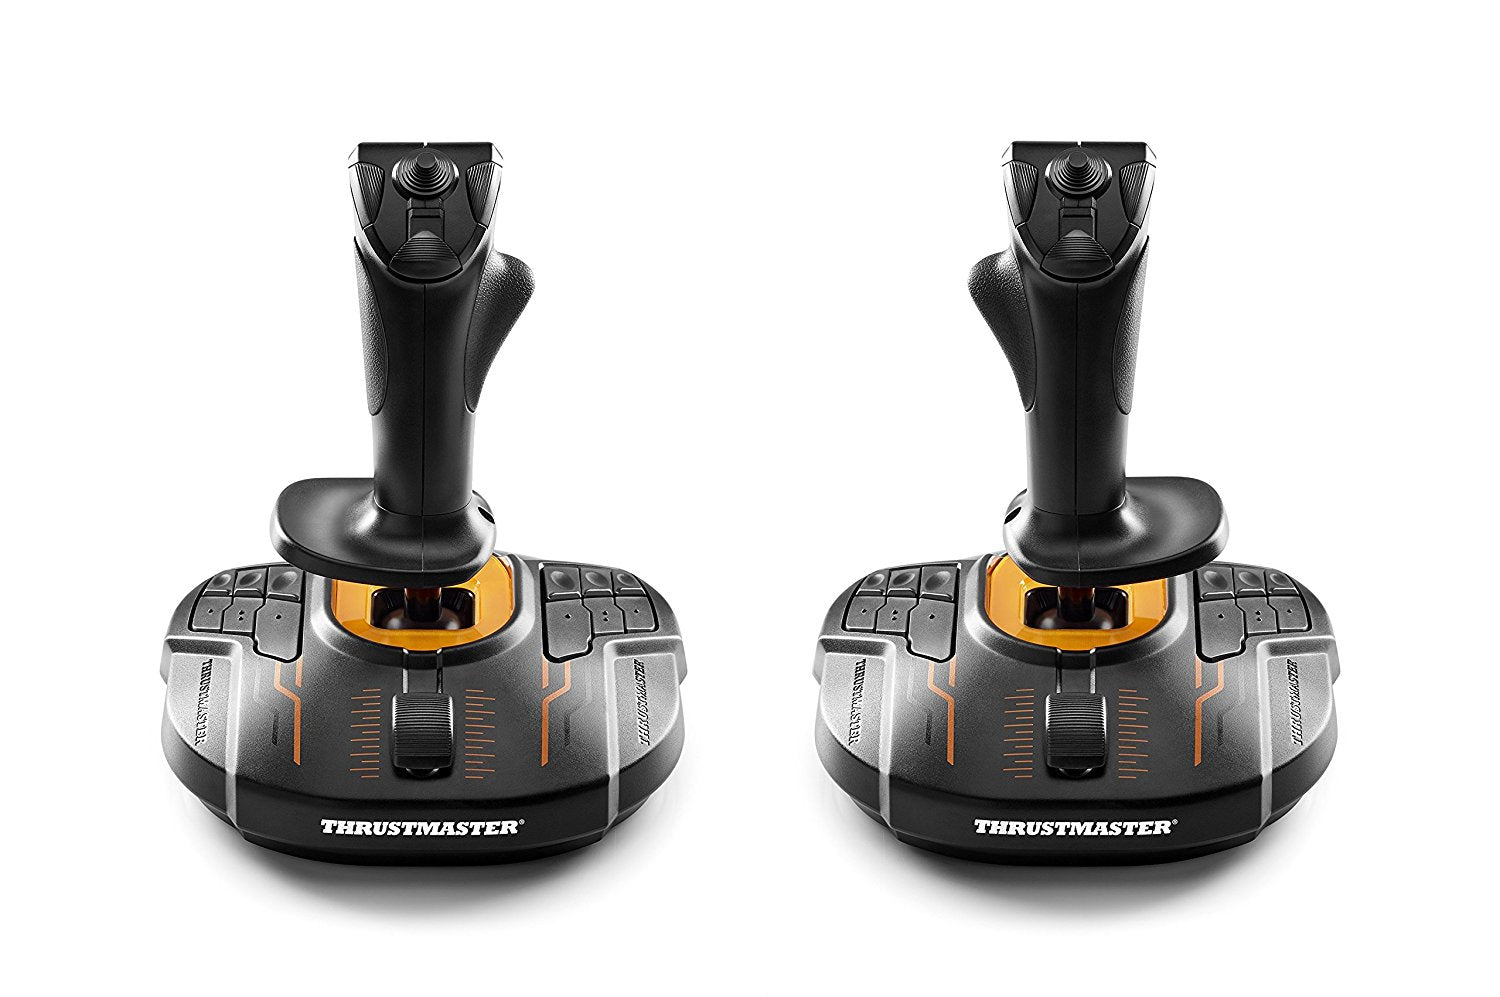 Thrustmaster T-16000M Space Sim Duo Stick